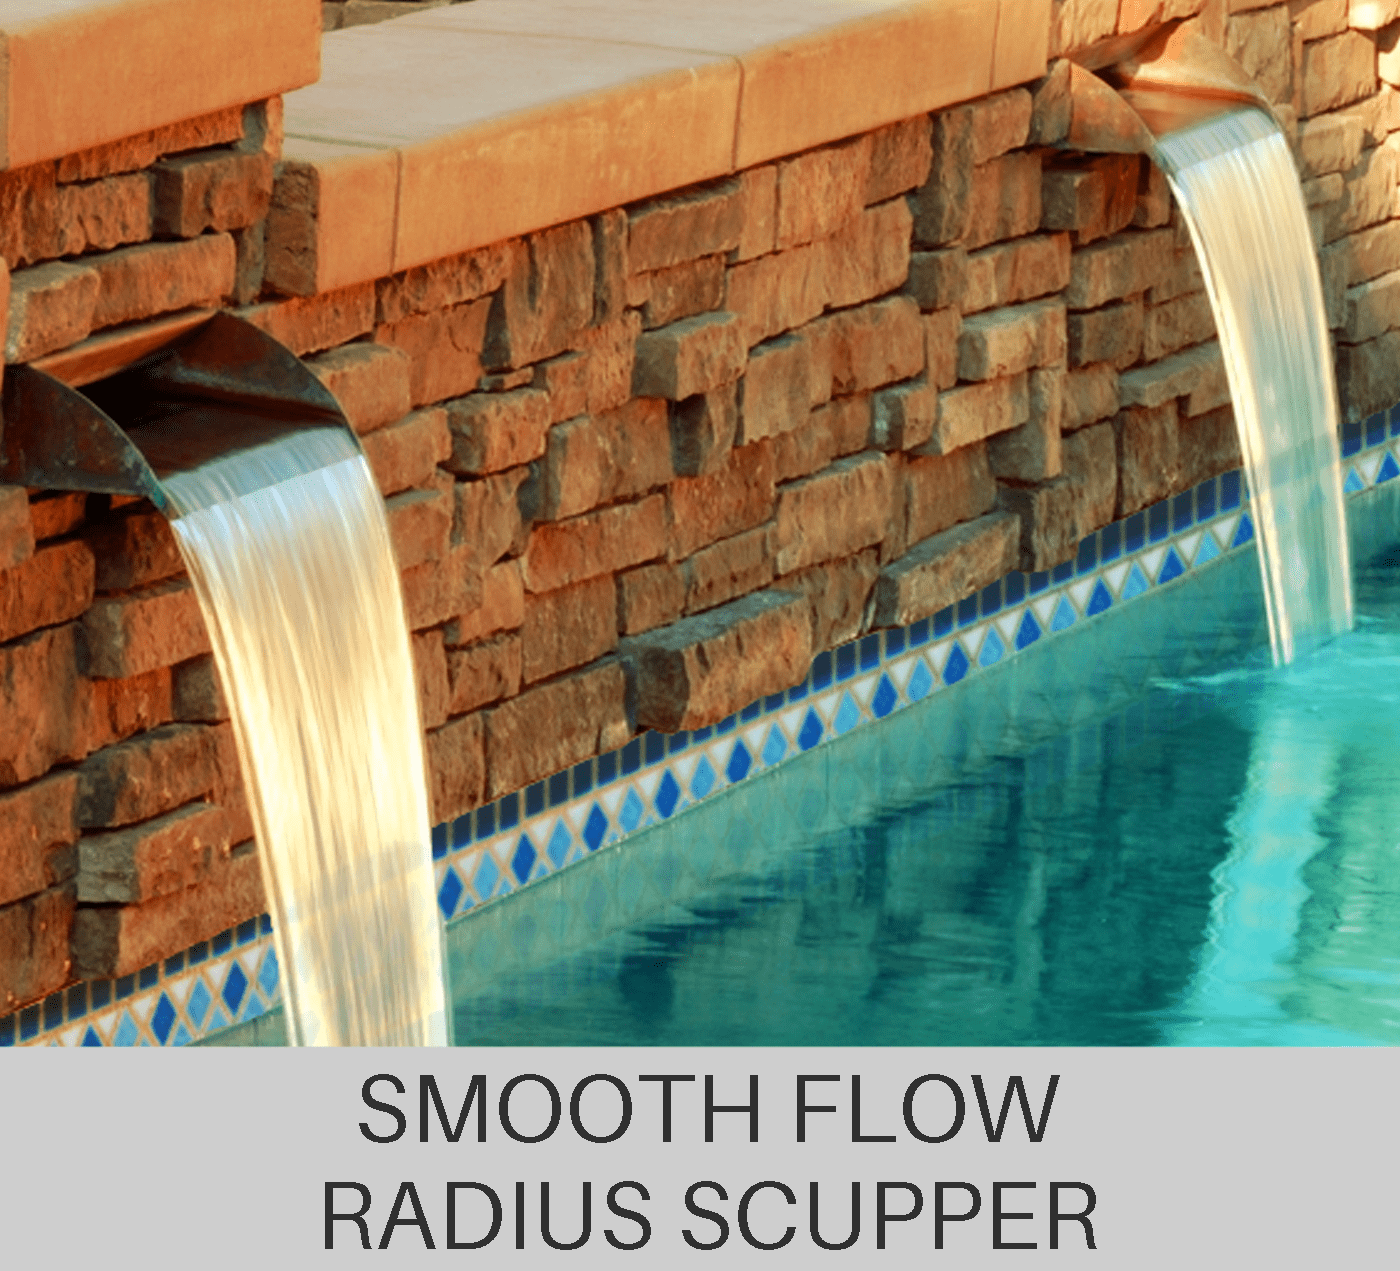 Smooth flow radius scupper